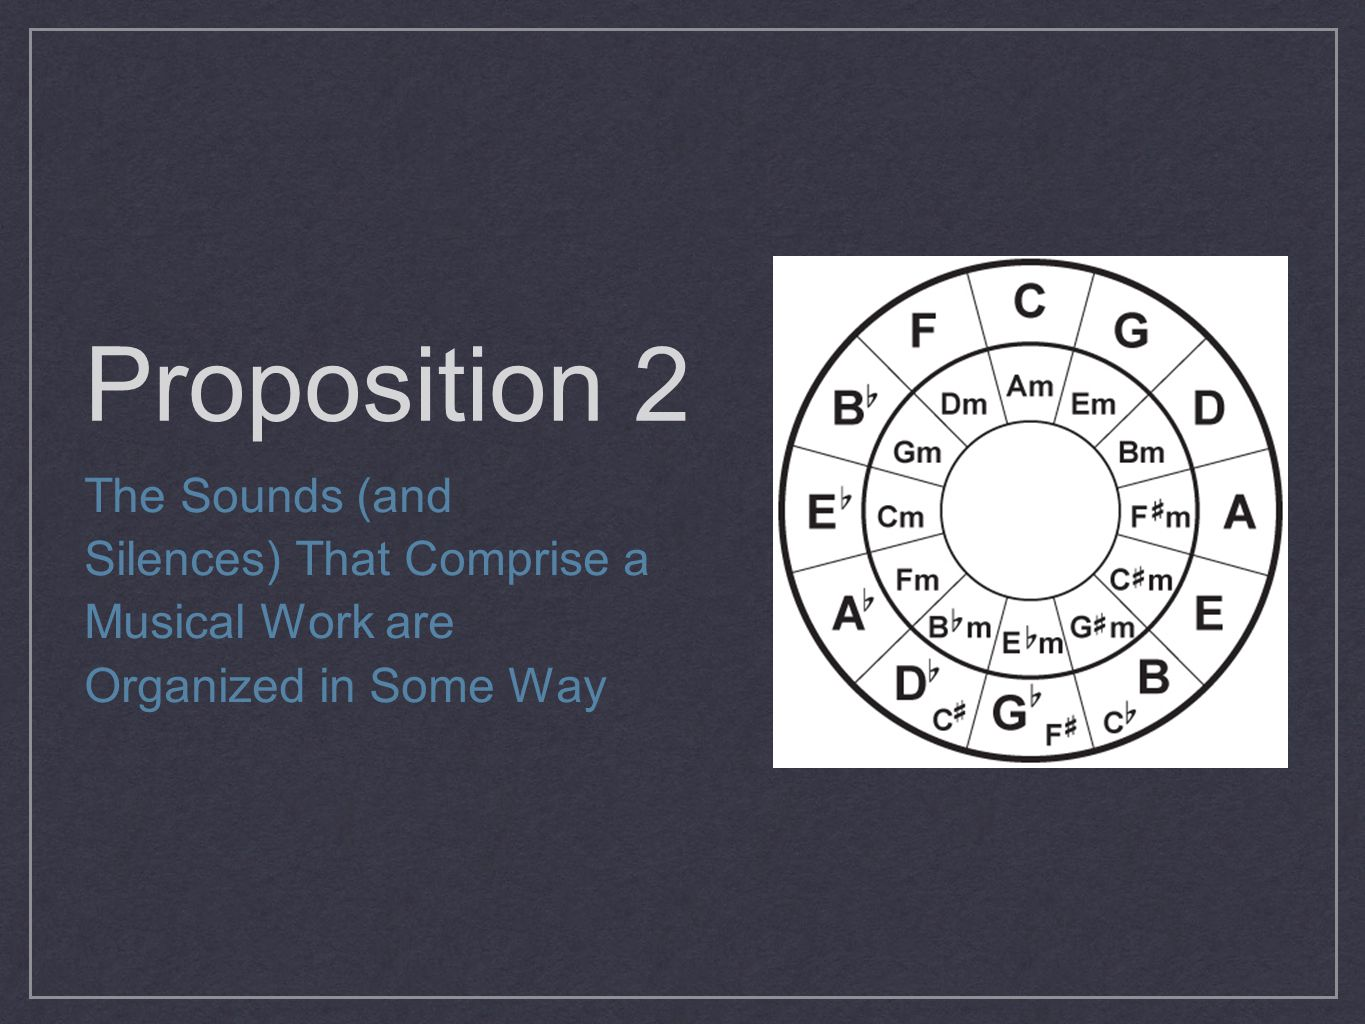 Proposition 2 The Sounds (and Silences) That Comprise a Musical Work are Organized in Some Way